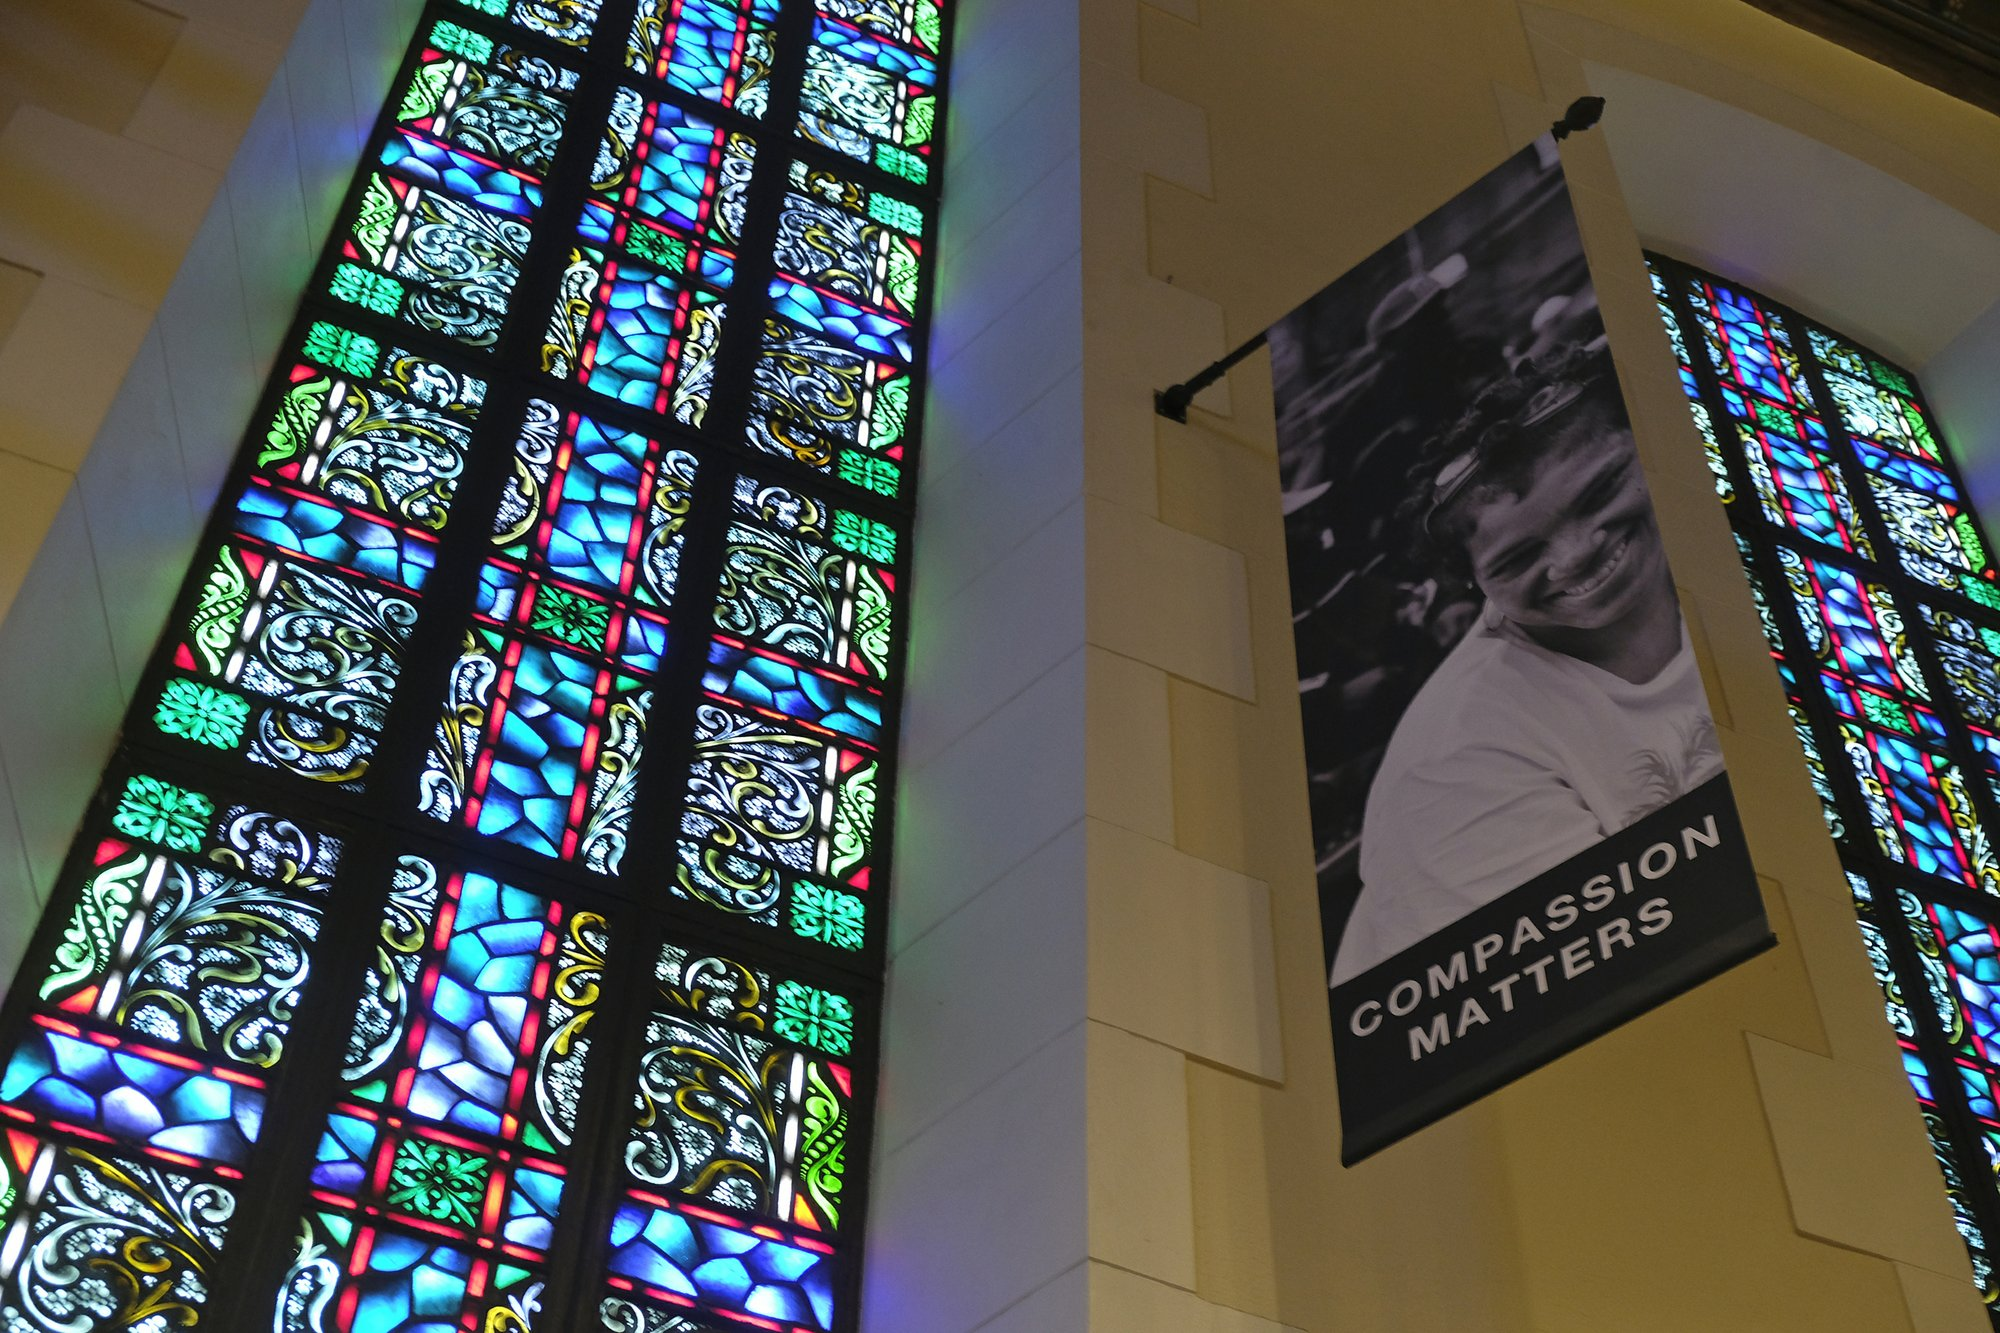 AP-NORC Poll: Americans rarely seek guidance from clergy